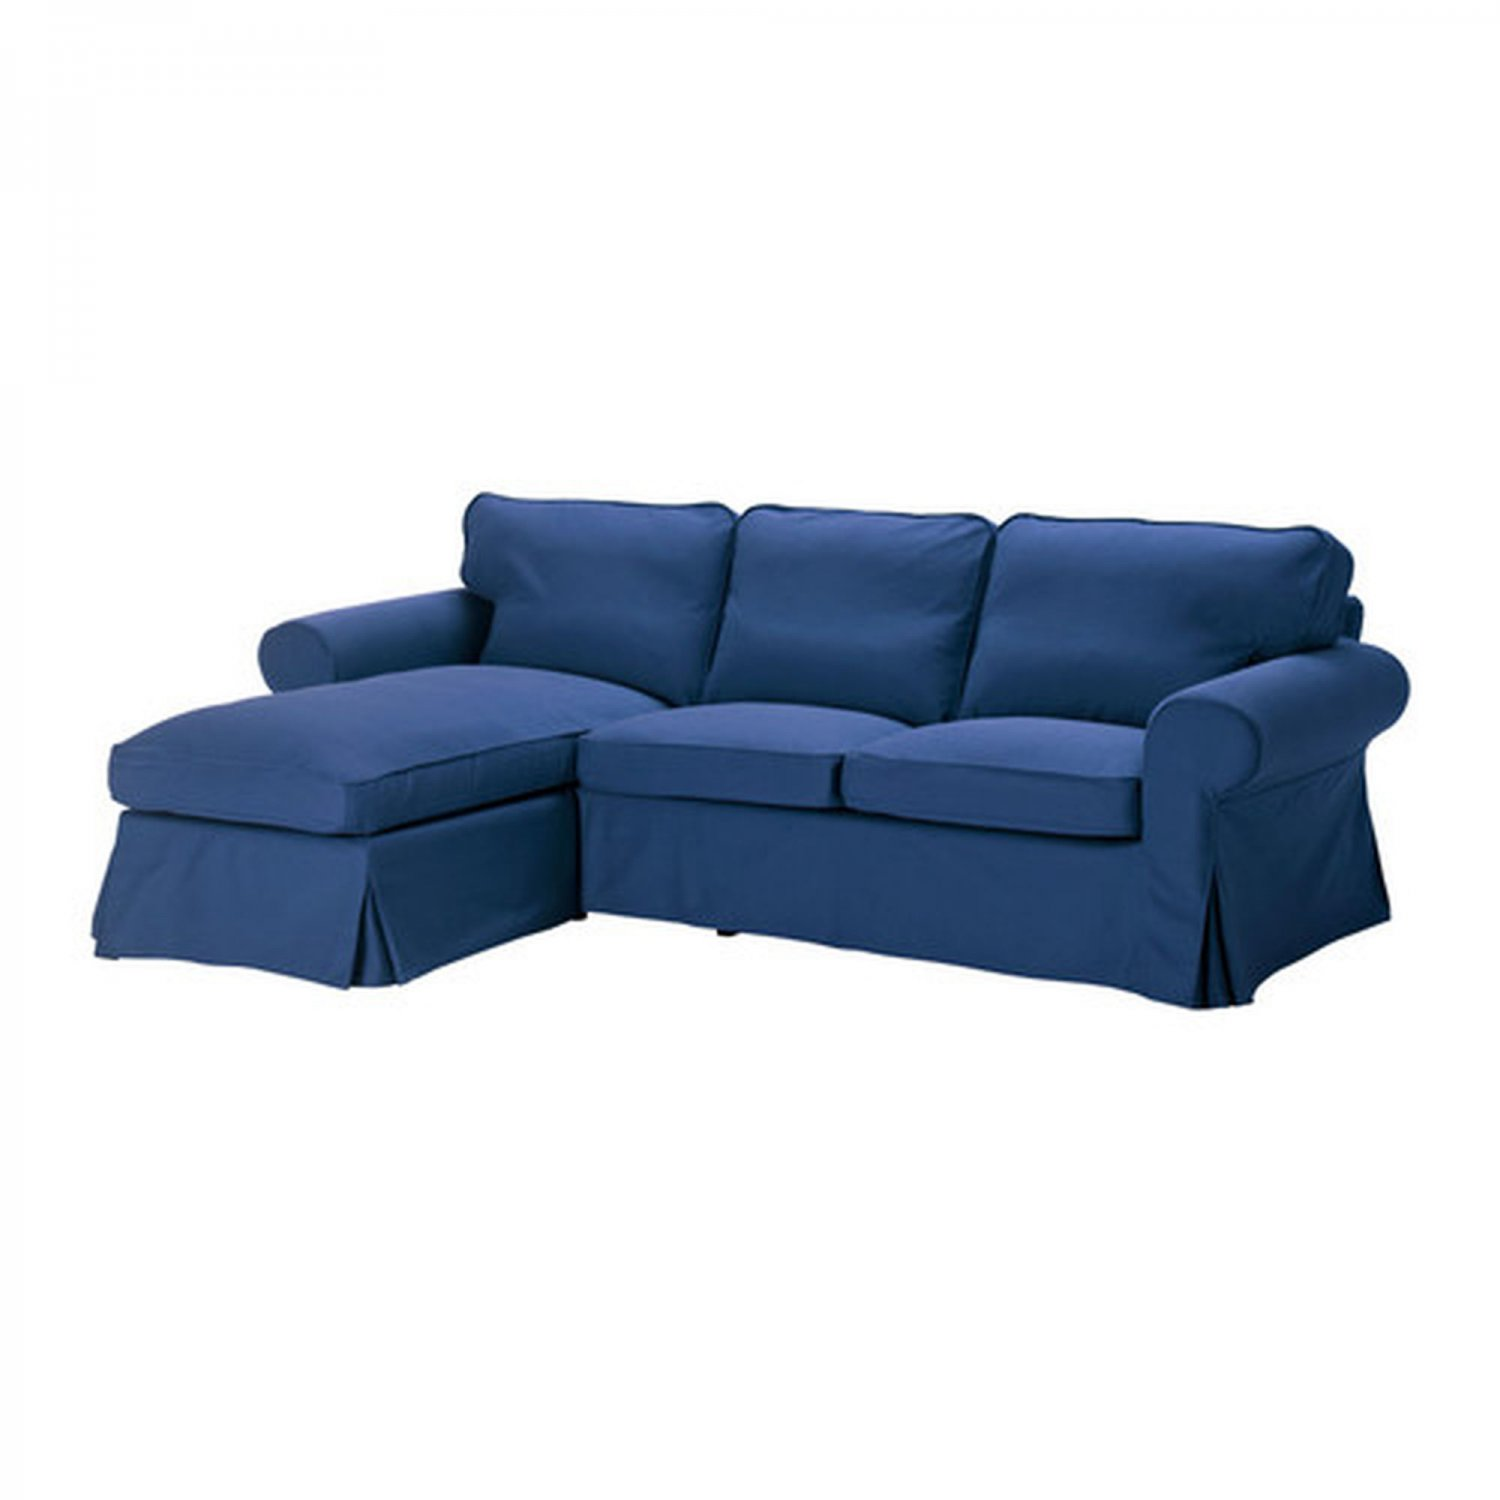 ikea ektorp loveseat with chaise lounge cover slipcover idemo blue. Black Bedroom Furniture Sets. Home Design Ideas